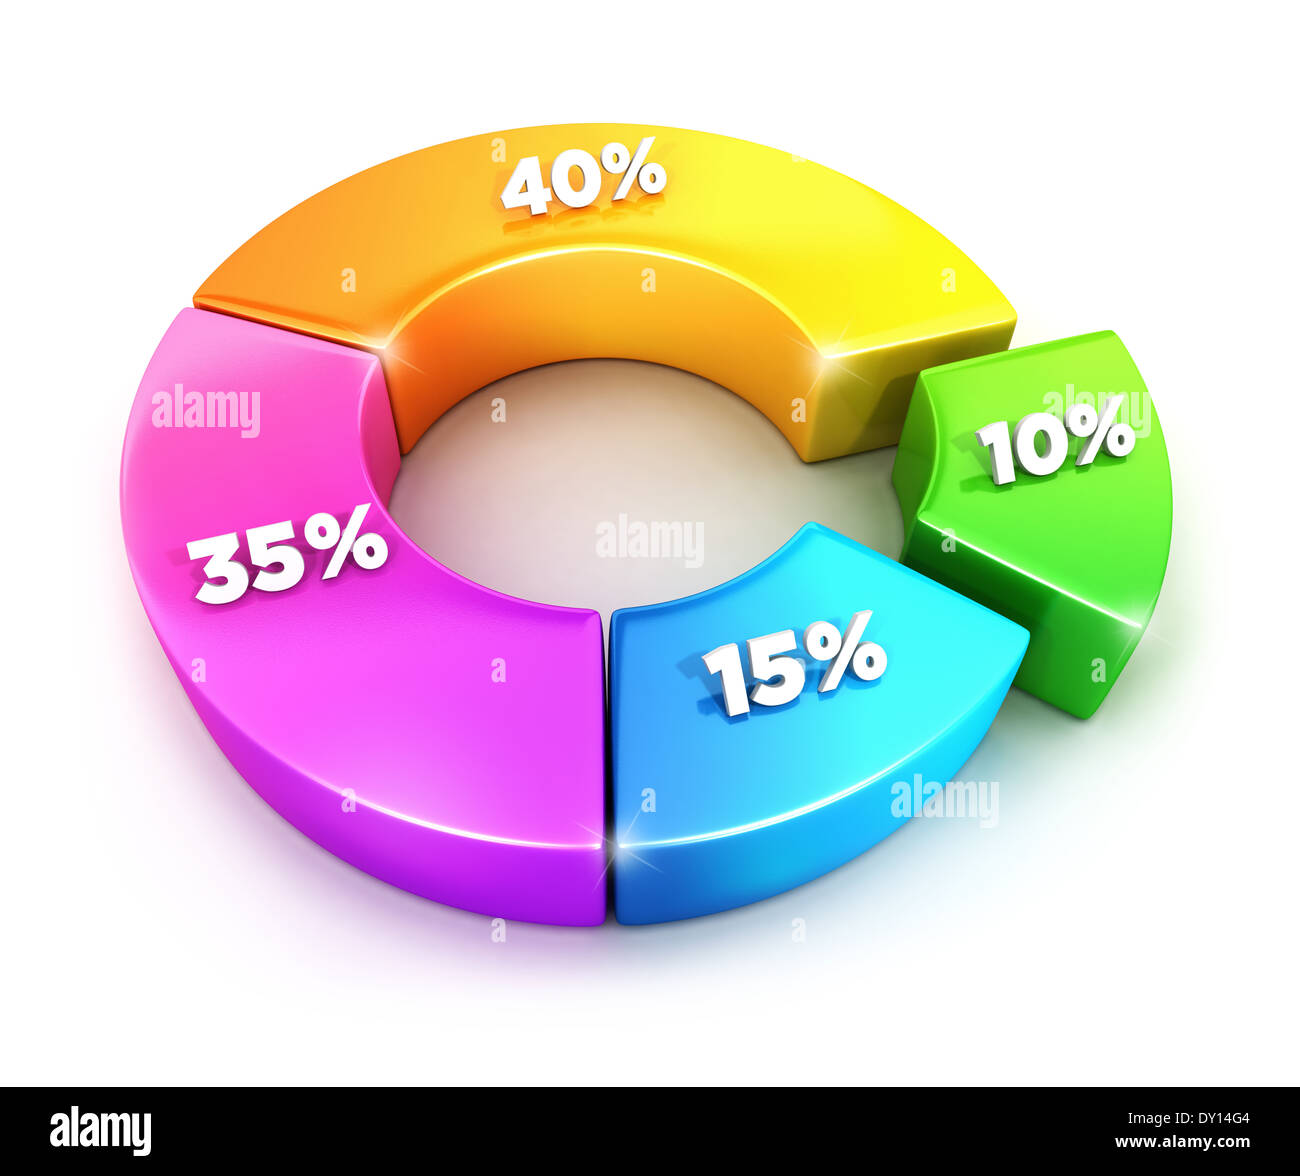 3d pie chart with percentages isolated white background 3d image 3d pie chart with percentages isolated white background 3d image nvjuhfo Choice Image